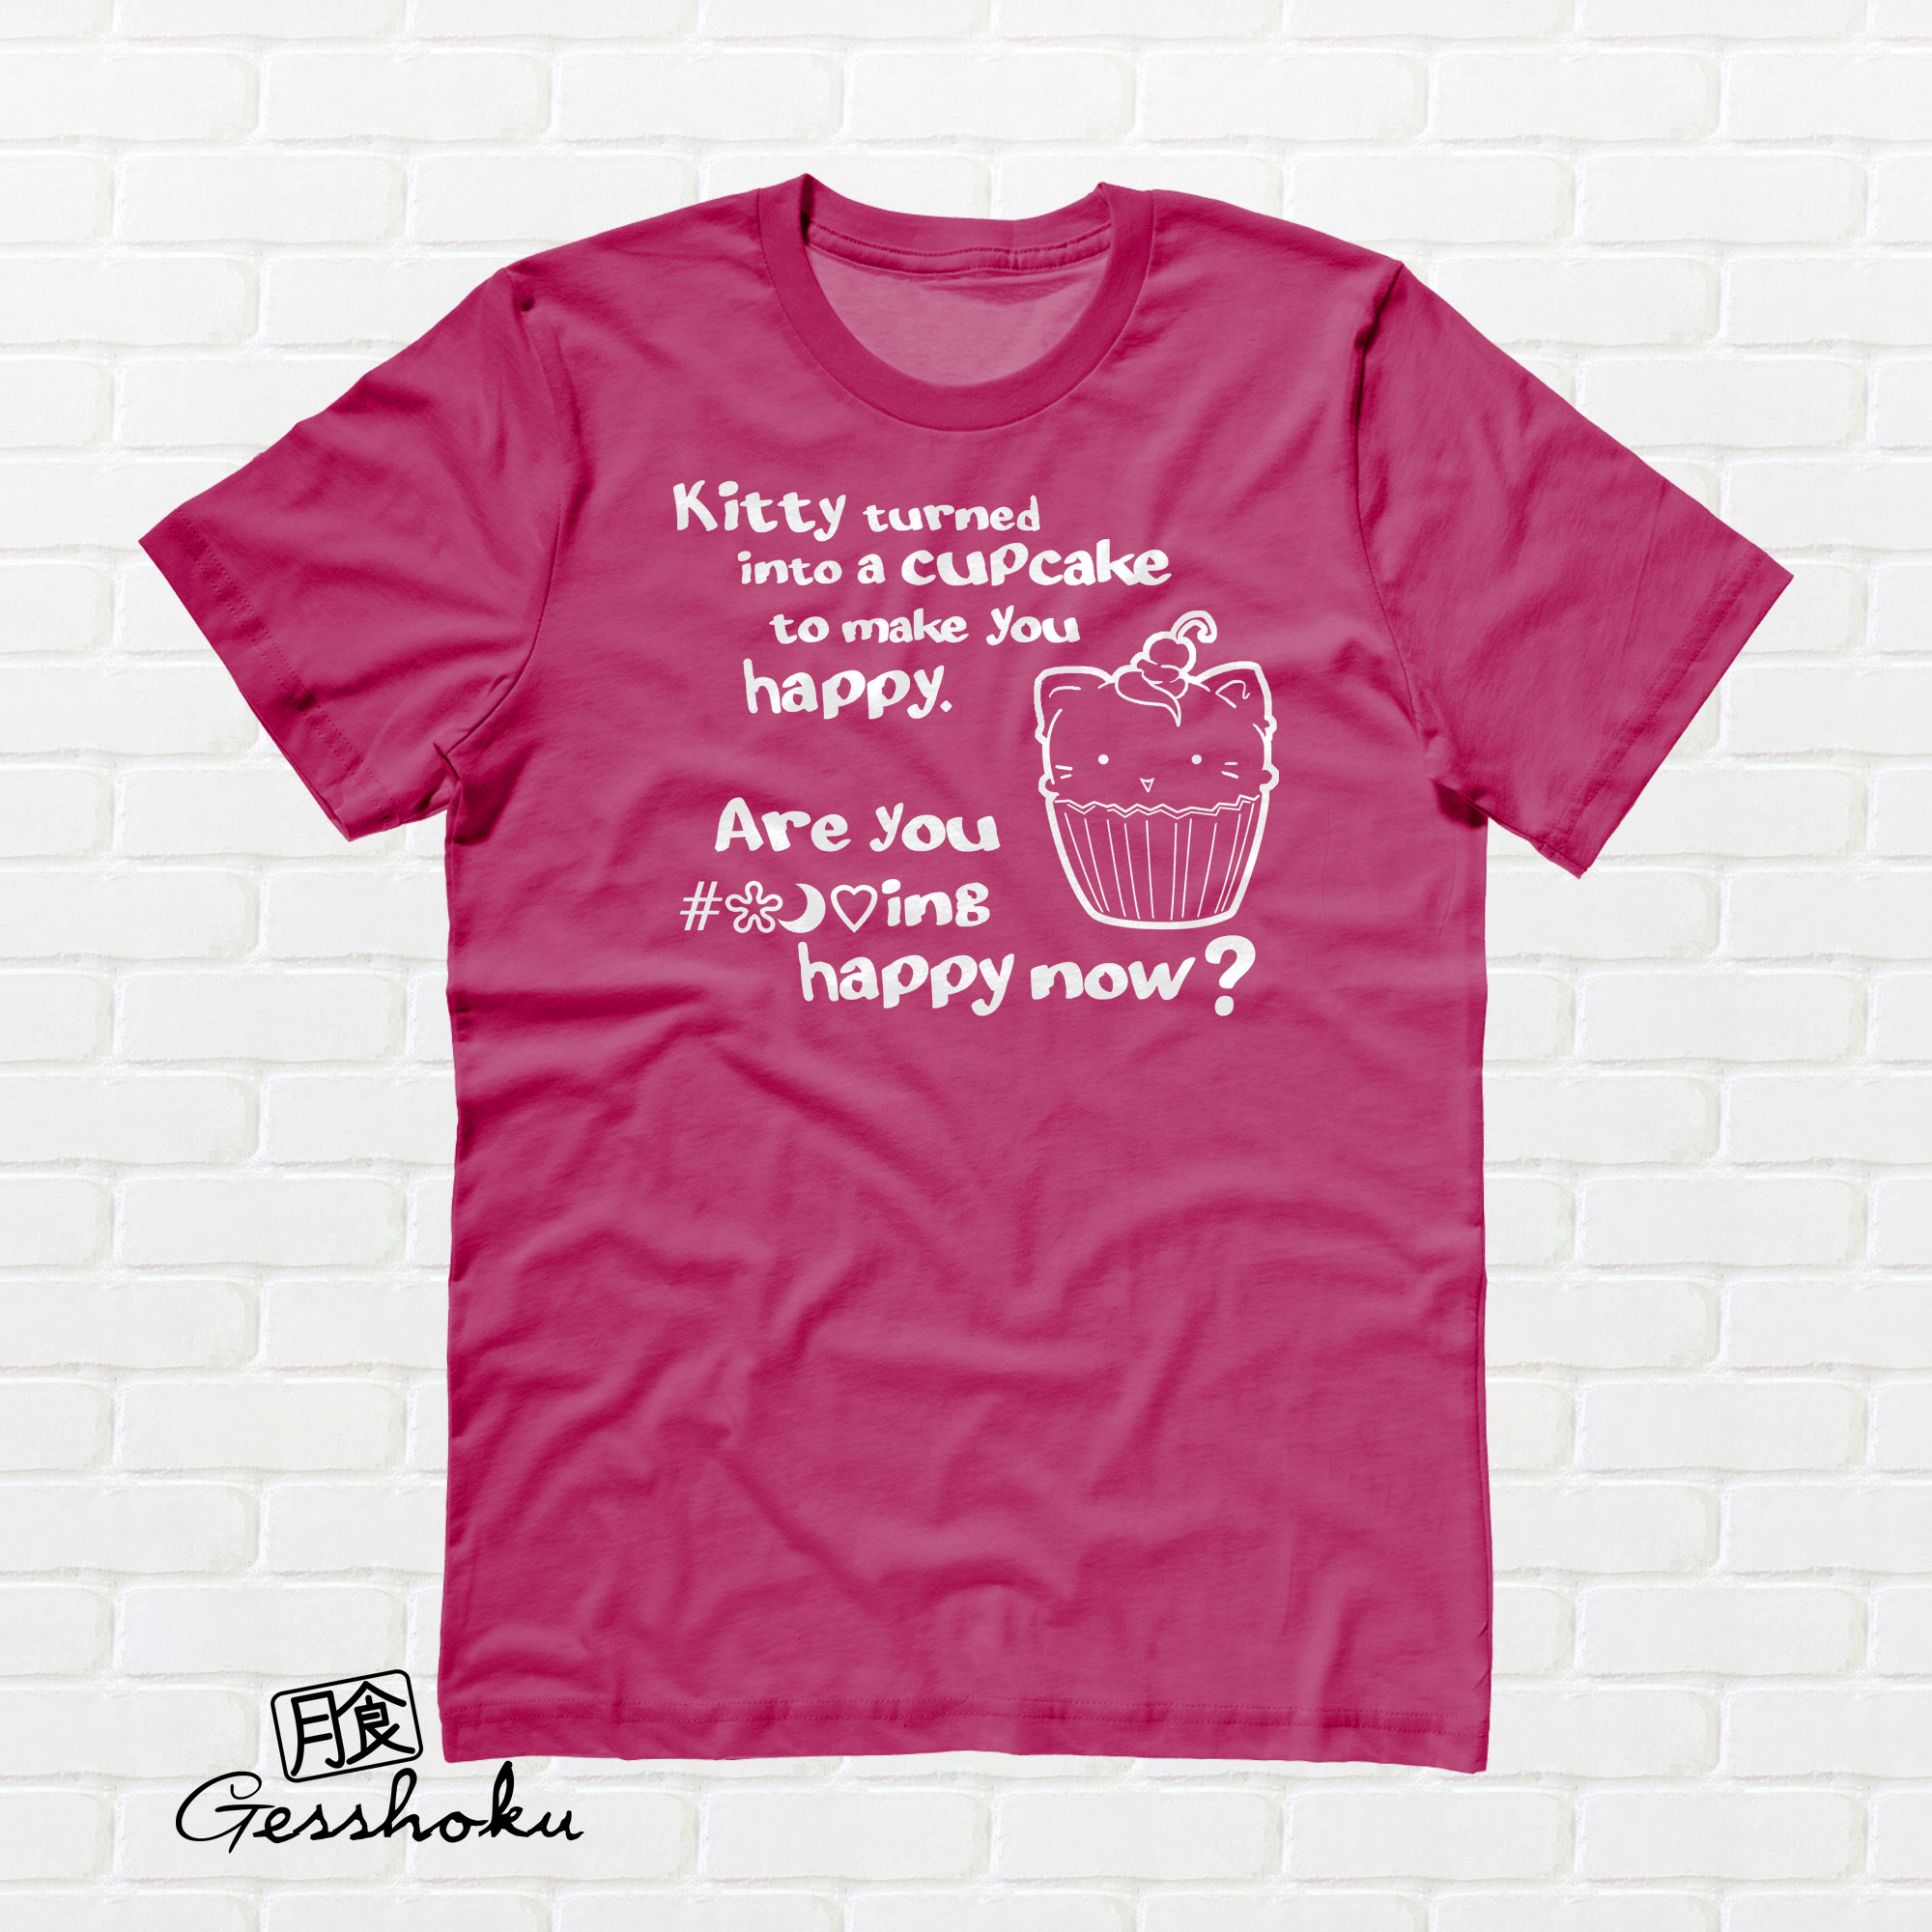 Kitty Turned into a Cupcake T-shirt - Hot Pink